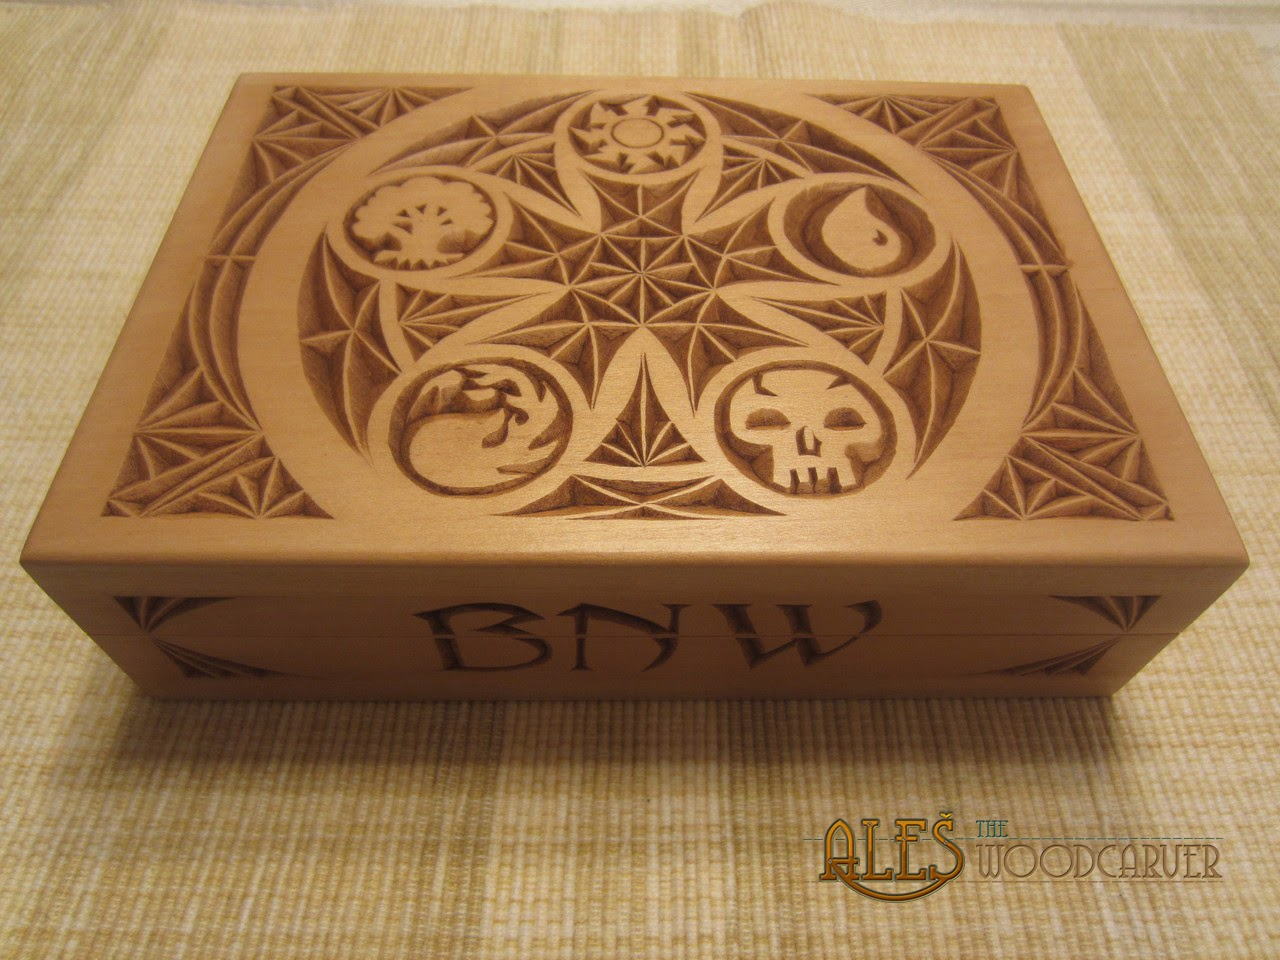 Ales the woodcarver magic gathering card boxes